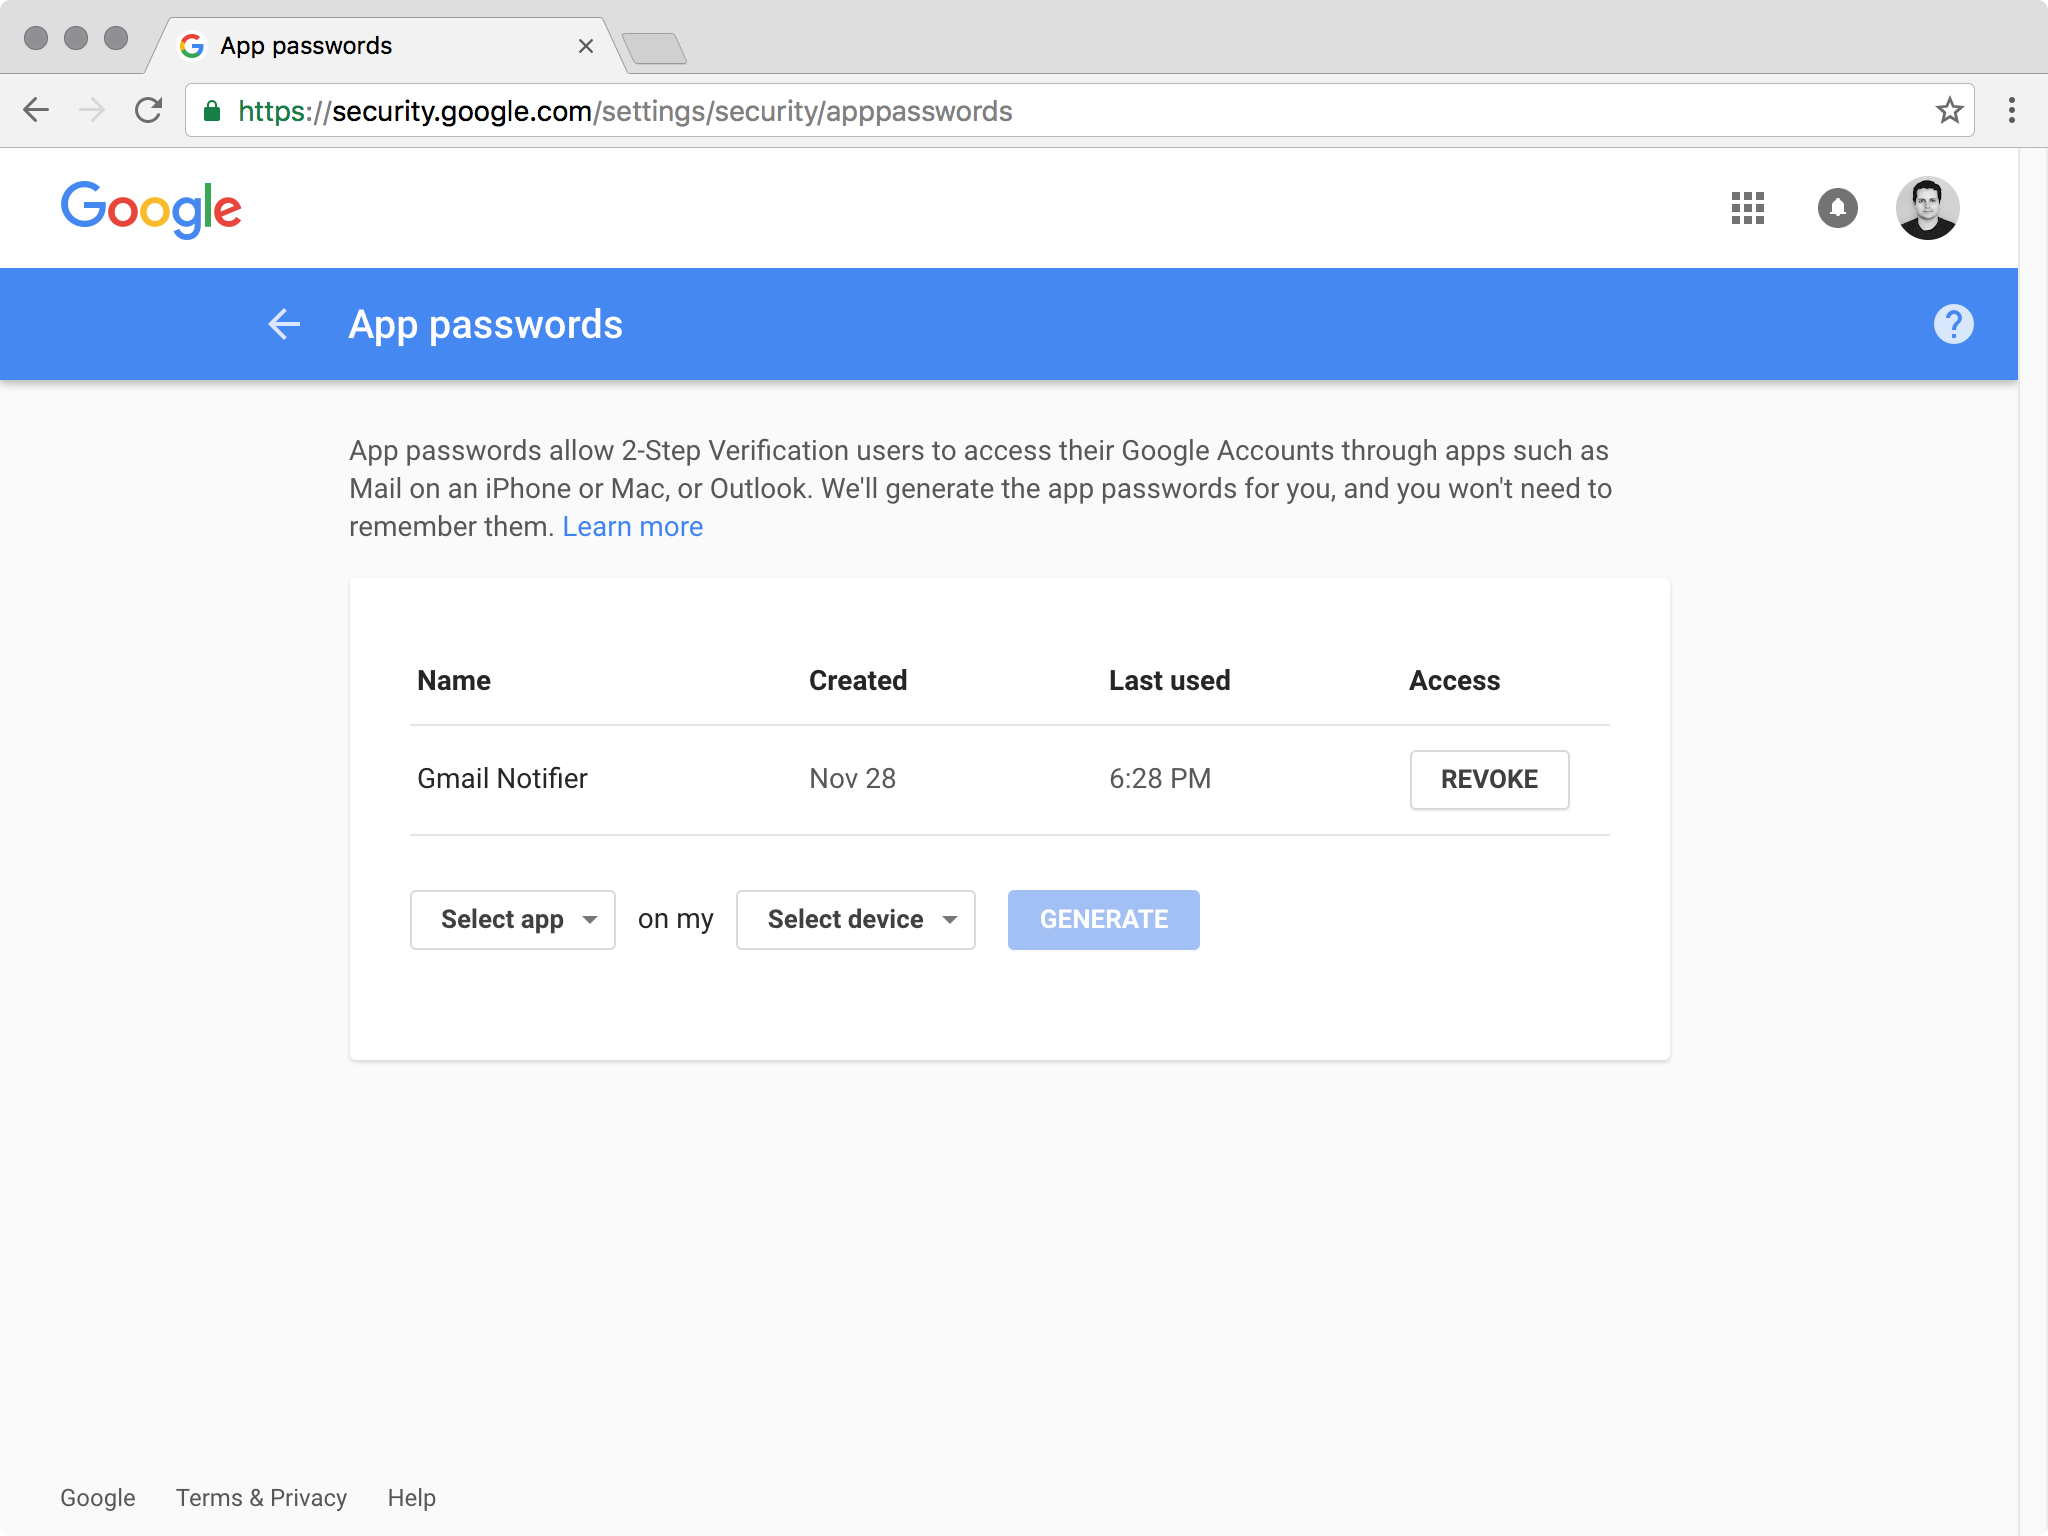 Creating new Google application-specific passwords